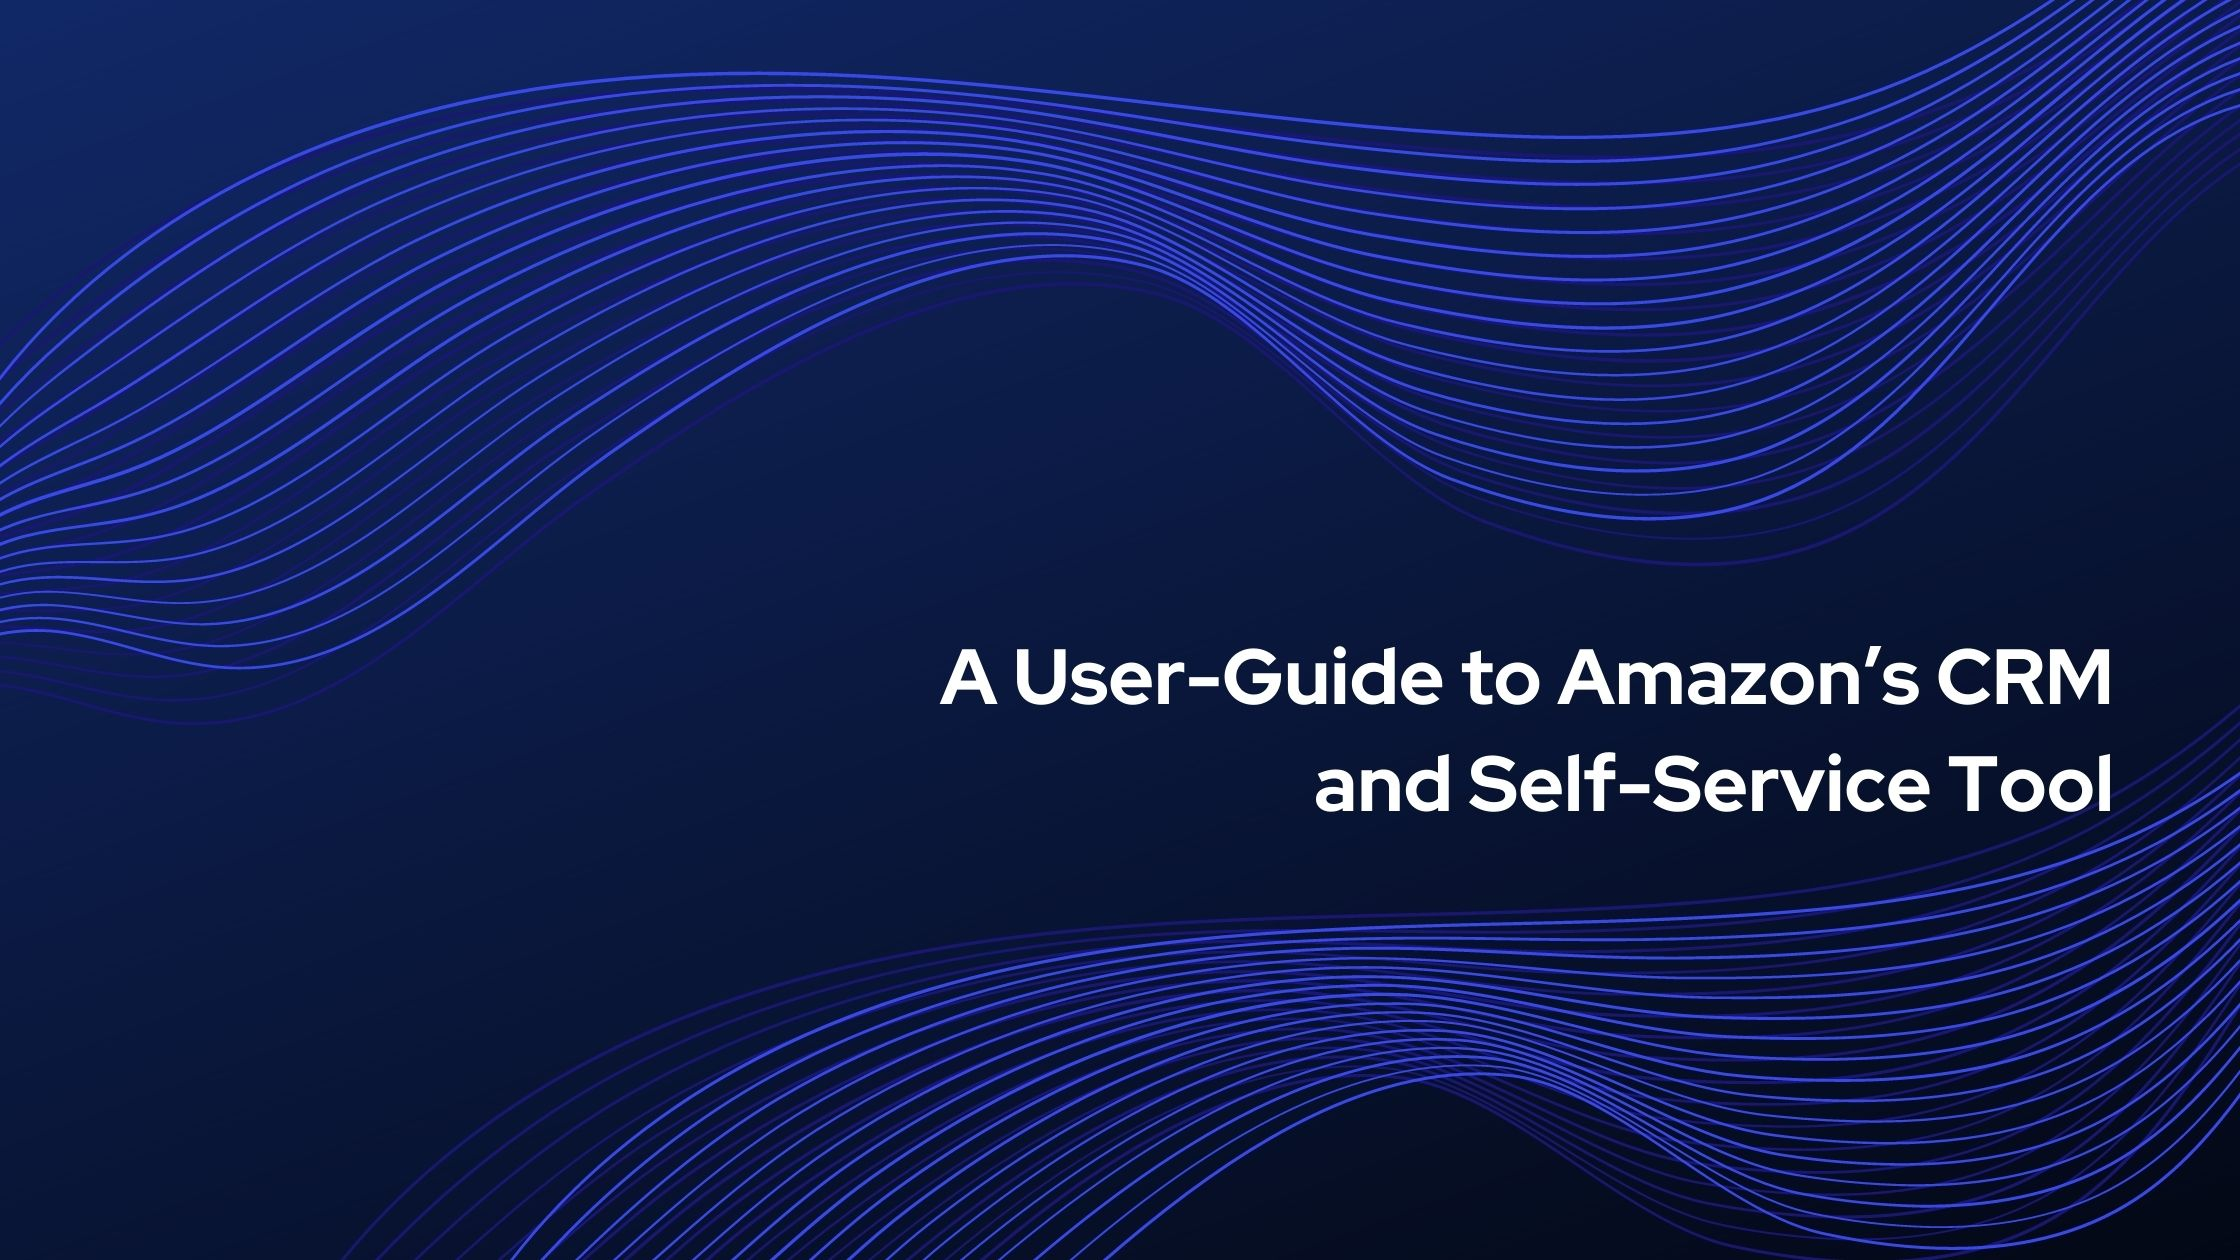 A User Guide to Amazon's CRM and Self Service Tools